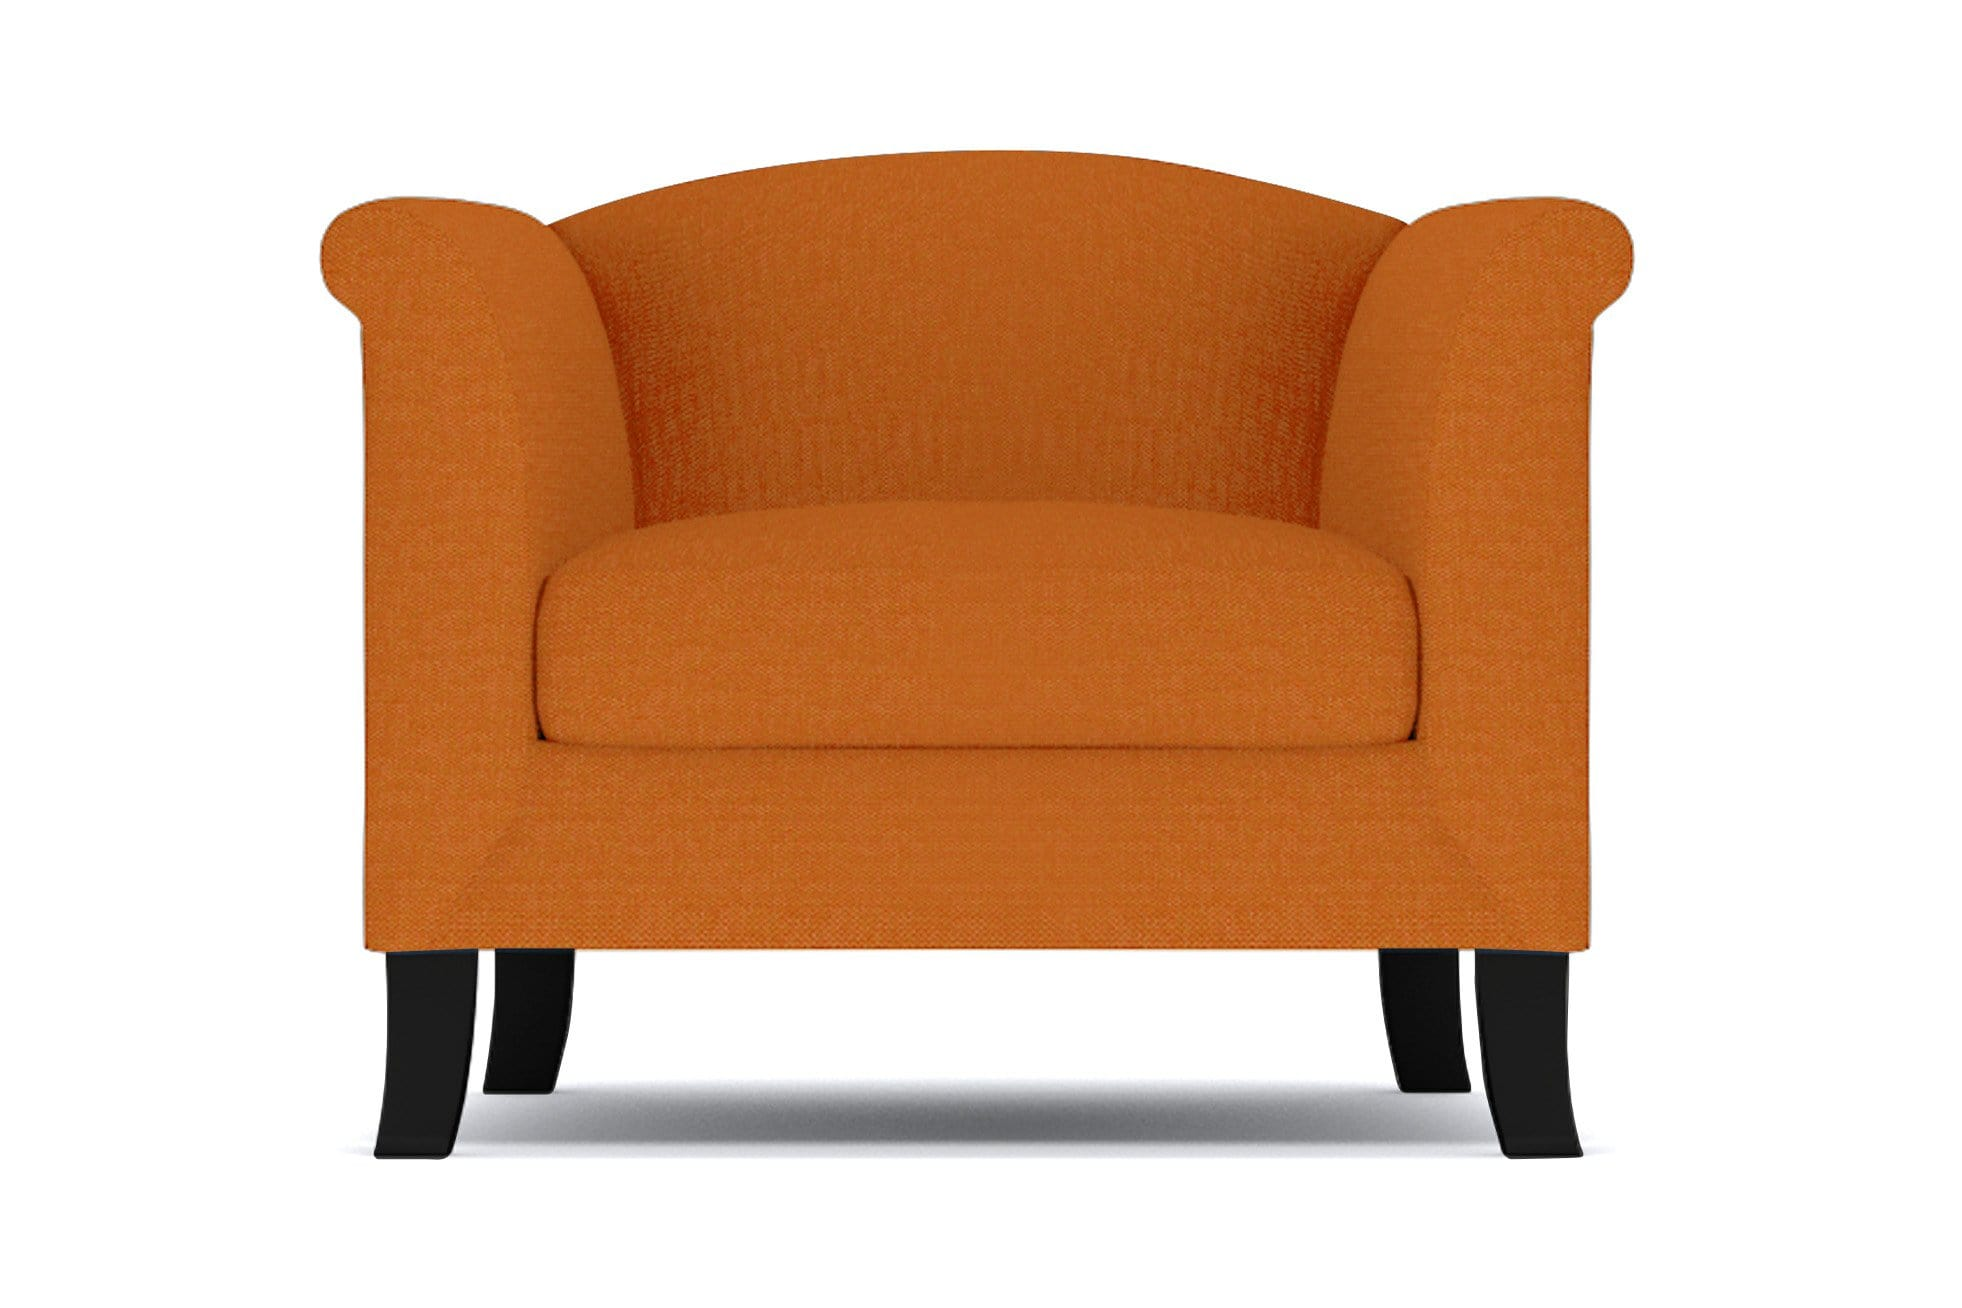 Albright_Chair__Orange___Accent_Chair__Furniture_sold_by_Apt2B